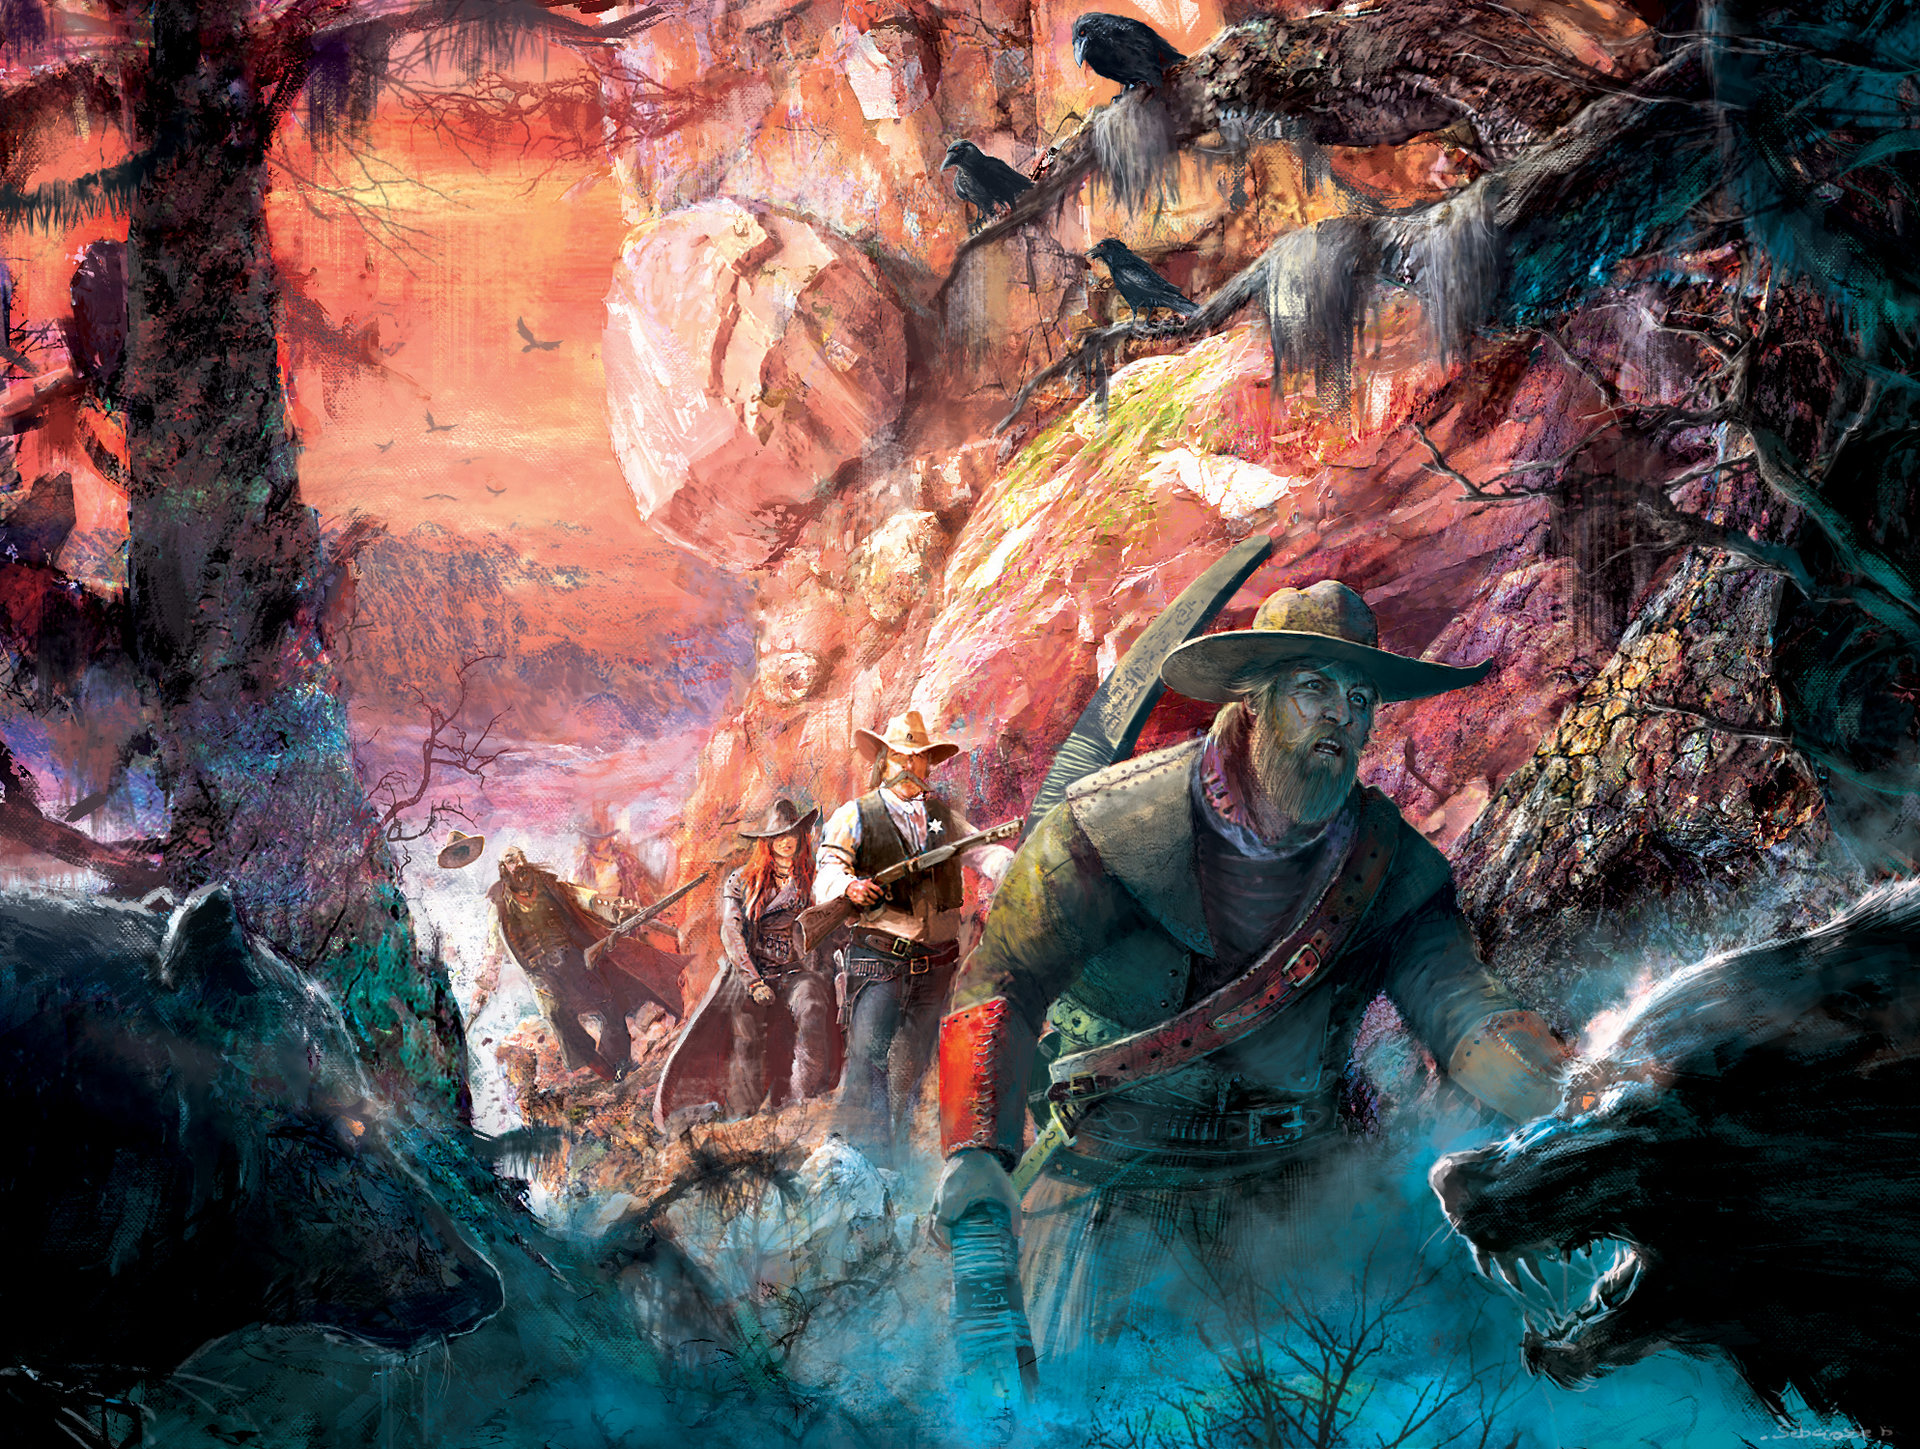 Sebastien ecosse rgb hunt on the mountain illus sebastien ecosse 5